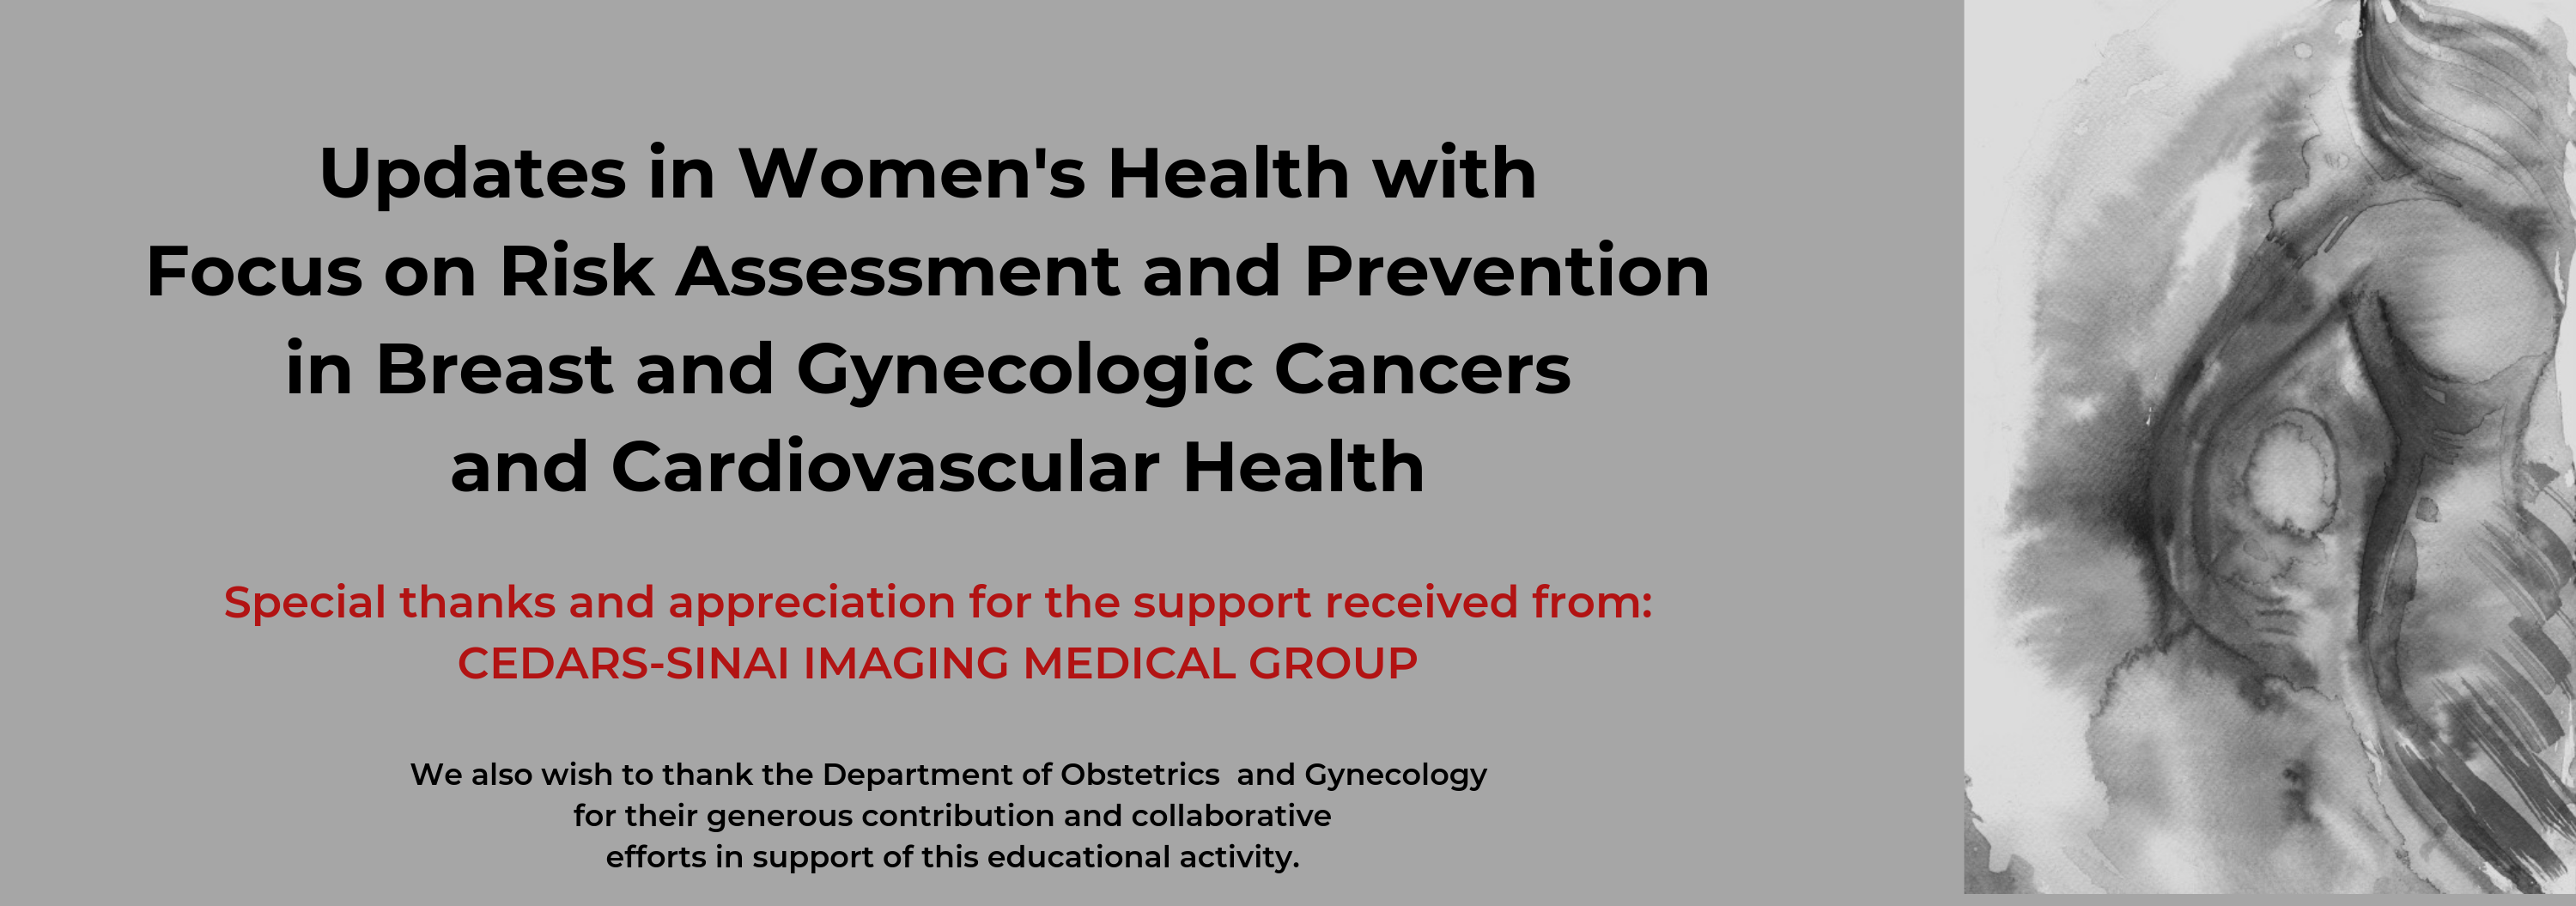 Updates in Women's Health with Focus on Risk Assessment and